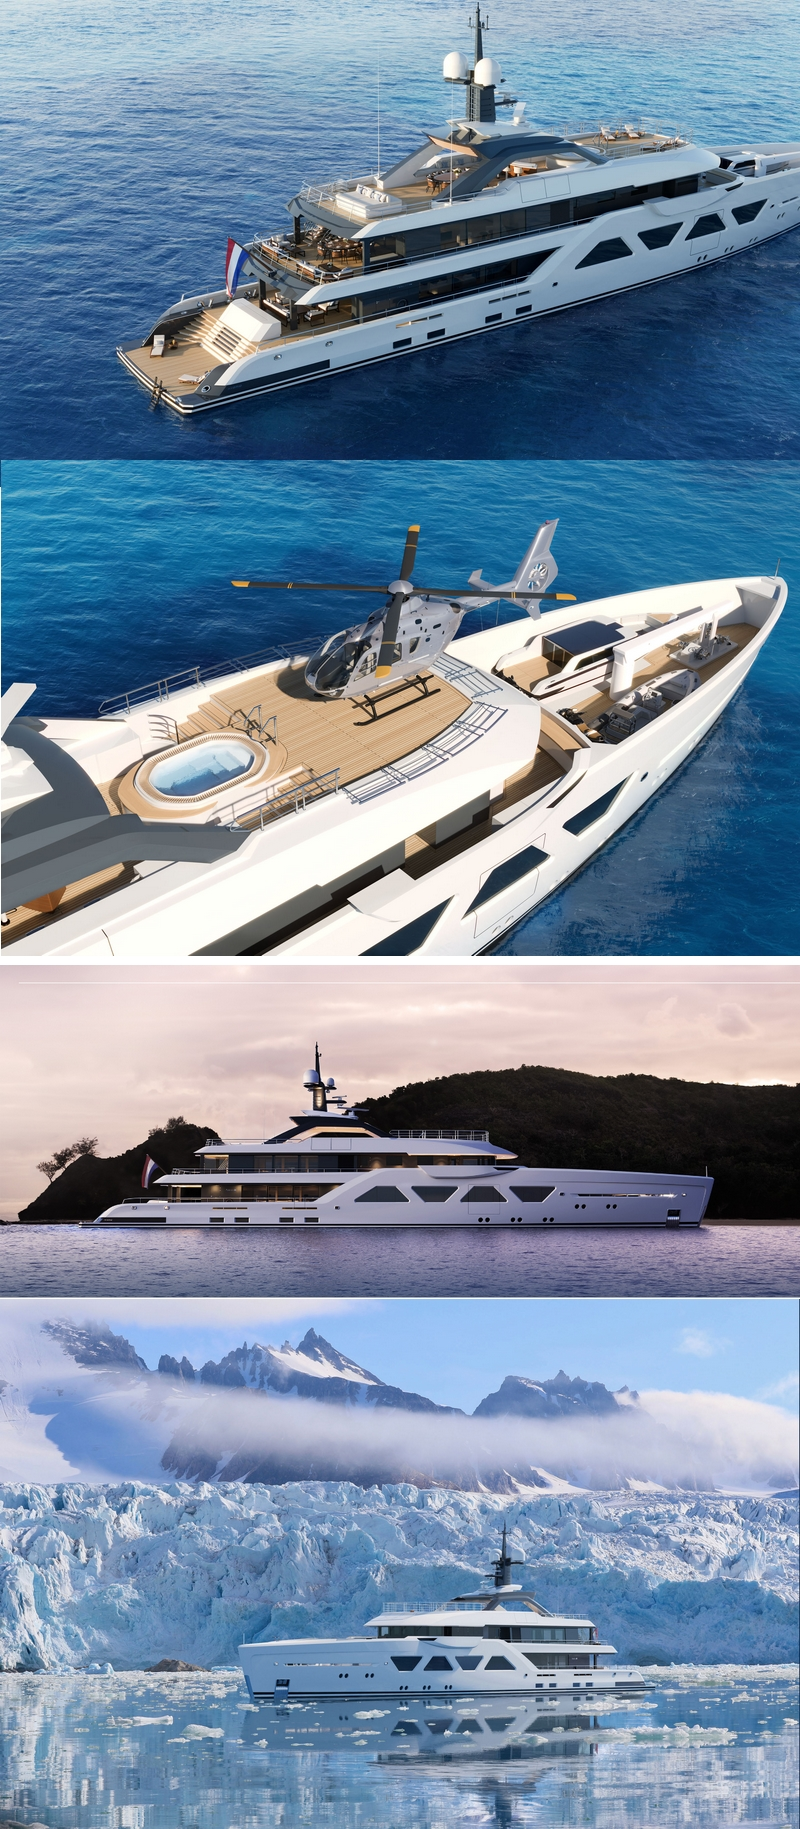 Amels Yachts Amels 60 - an exciting new take on the very best Amels knowhow and craftsmanship.